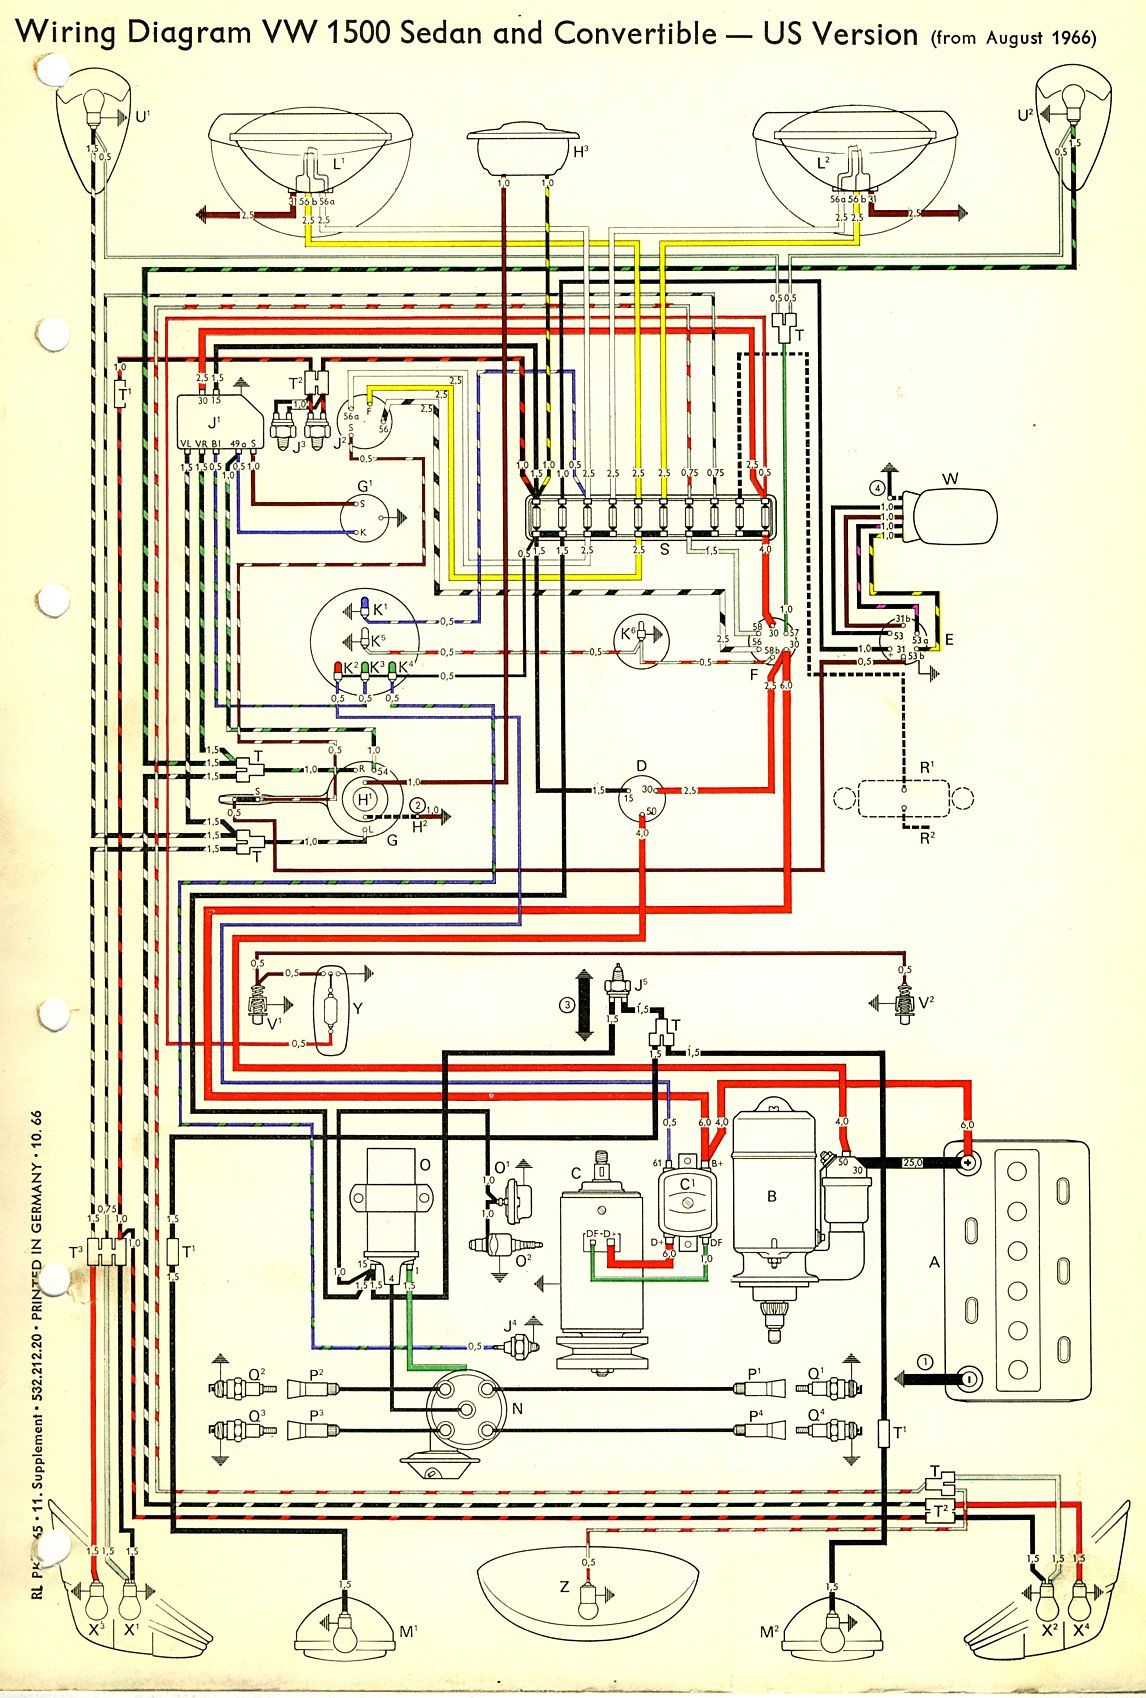 1adf990c0efb617c789fdd21338448b0 1967 beetle wiring diagram (usa) thegoldenbug com best 1967 vw vw bug wiring diagram at bayanpartner.co